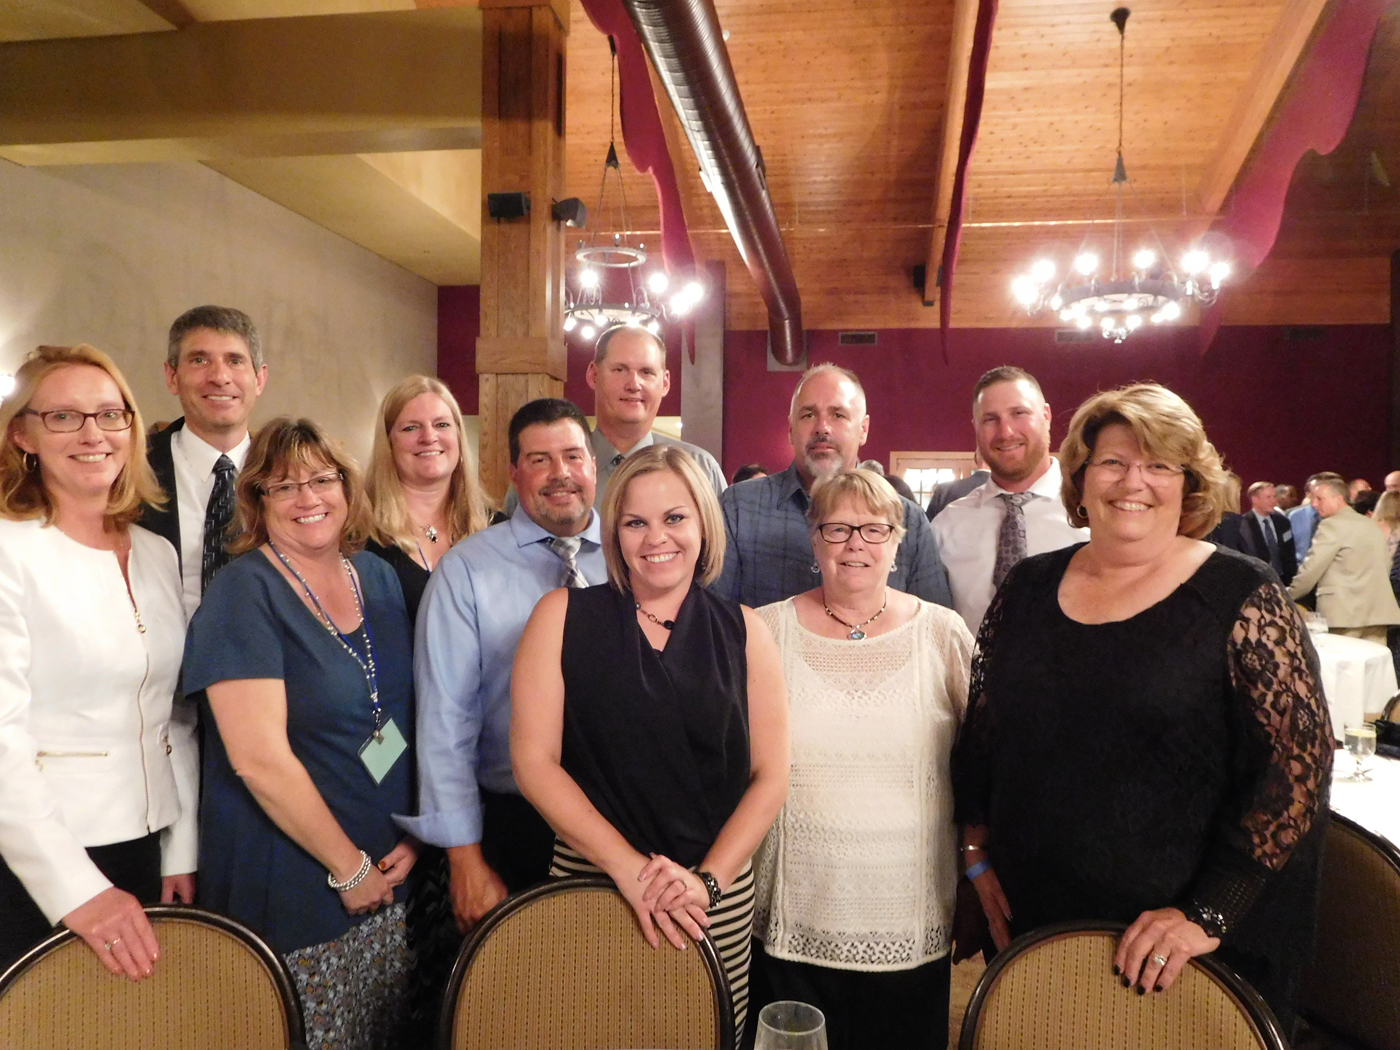 The Churchville contingent attending the 86th MEUA Annual Conference in Ellicottville pose with Mayor Nancy Steedman, who was installed as the first woman MEUA president. Provided photo